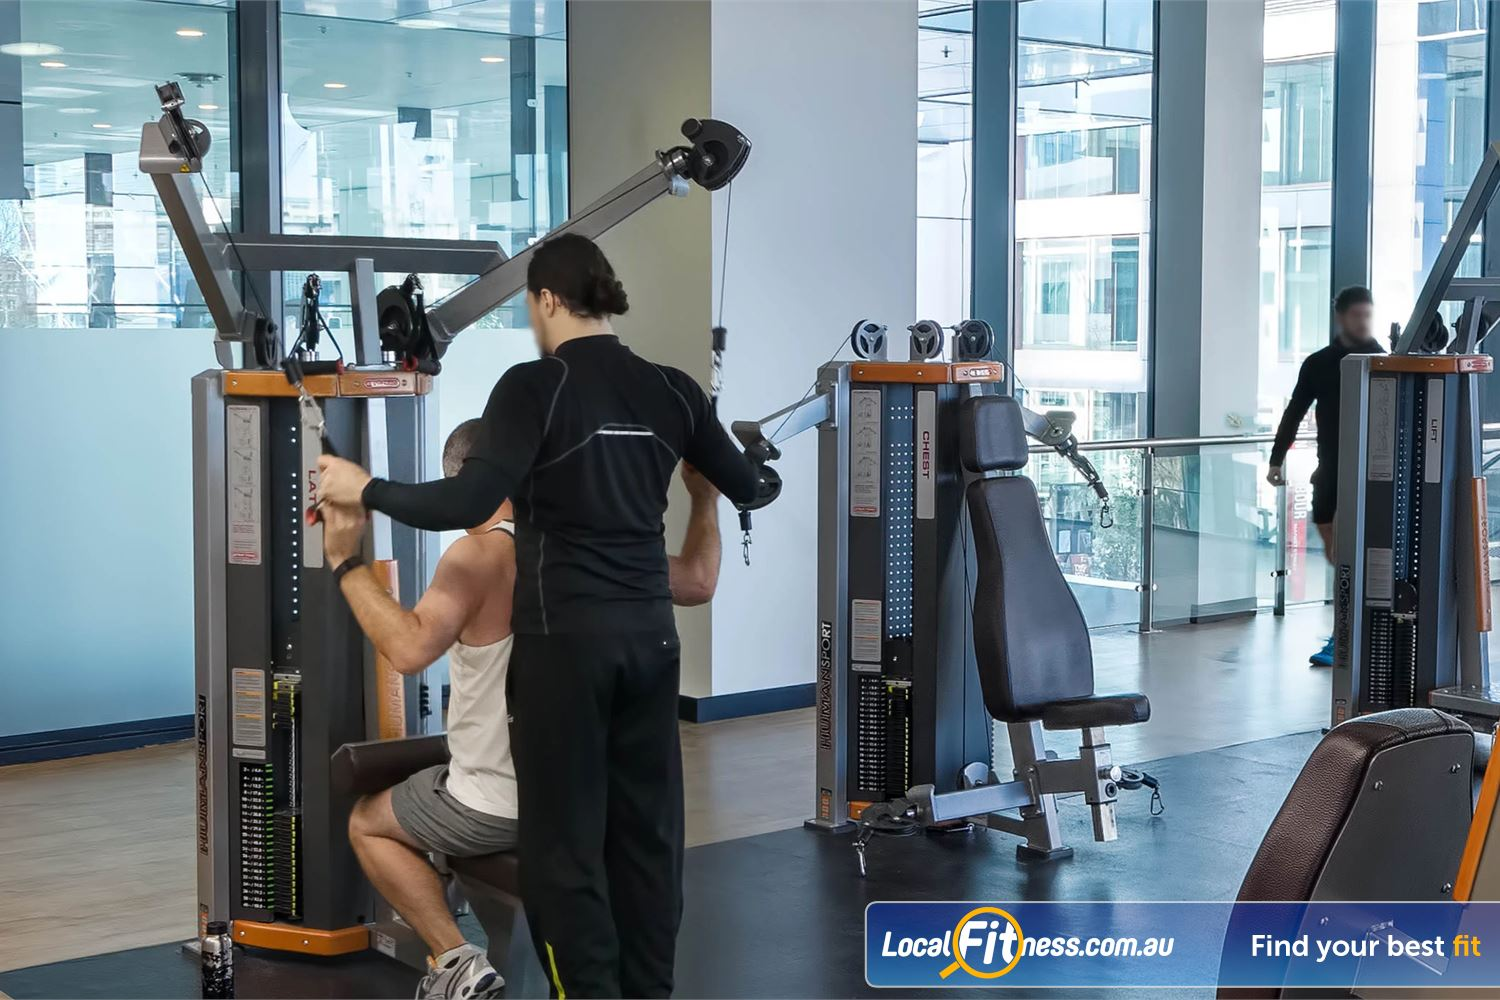 Fitness First Platinum Market St. Near Alexandria Mc Innovative training with the latest Human Sports Strength equipment to train multiple areas of your body.